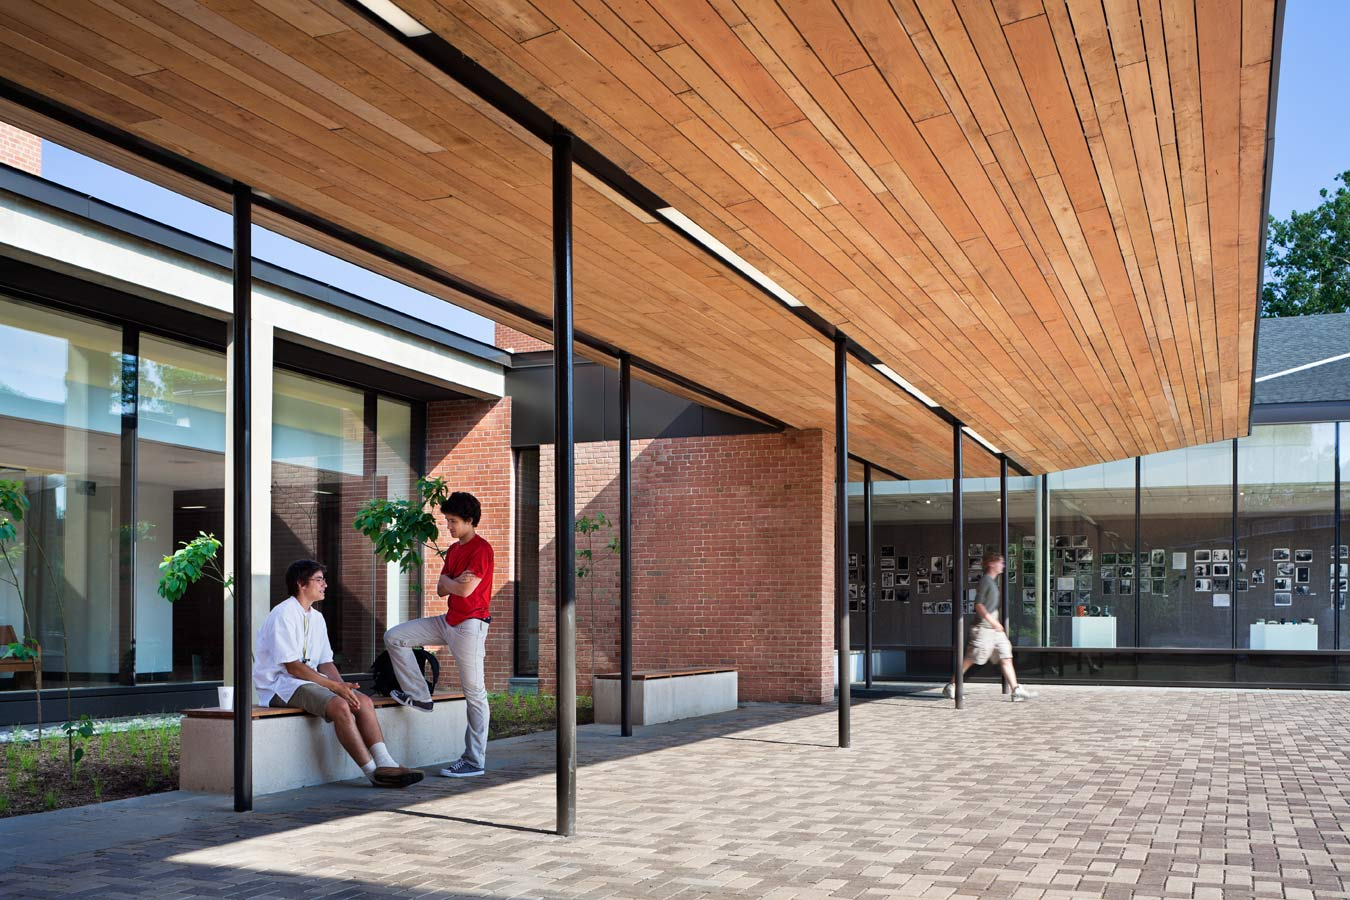 <p>The canopy and benches create a transition space between the life of the renewed plaza and the Meeting House. A narrow, tree-lined garden filters light entering the central lobby and gallery. <br><small>&copy; Michael Moran/OTTO</small></p>